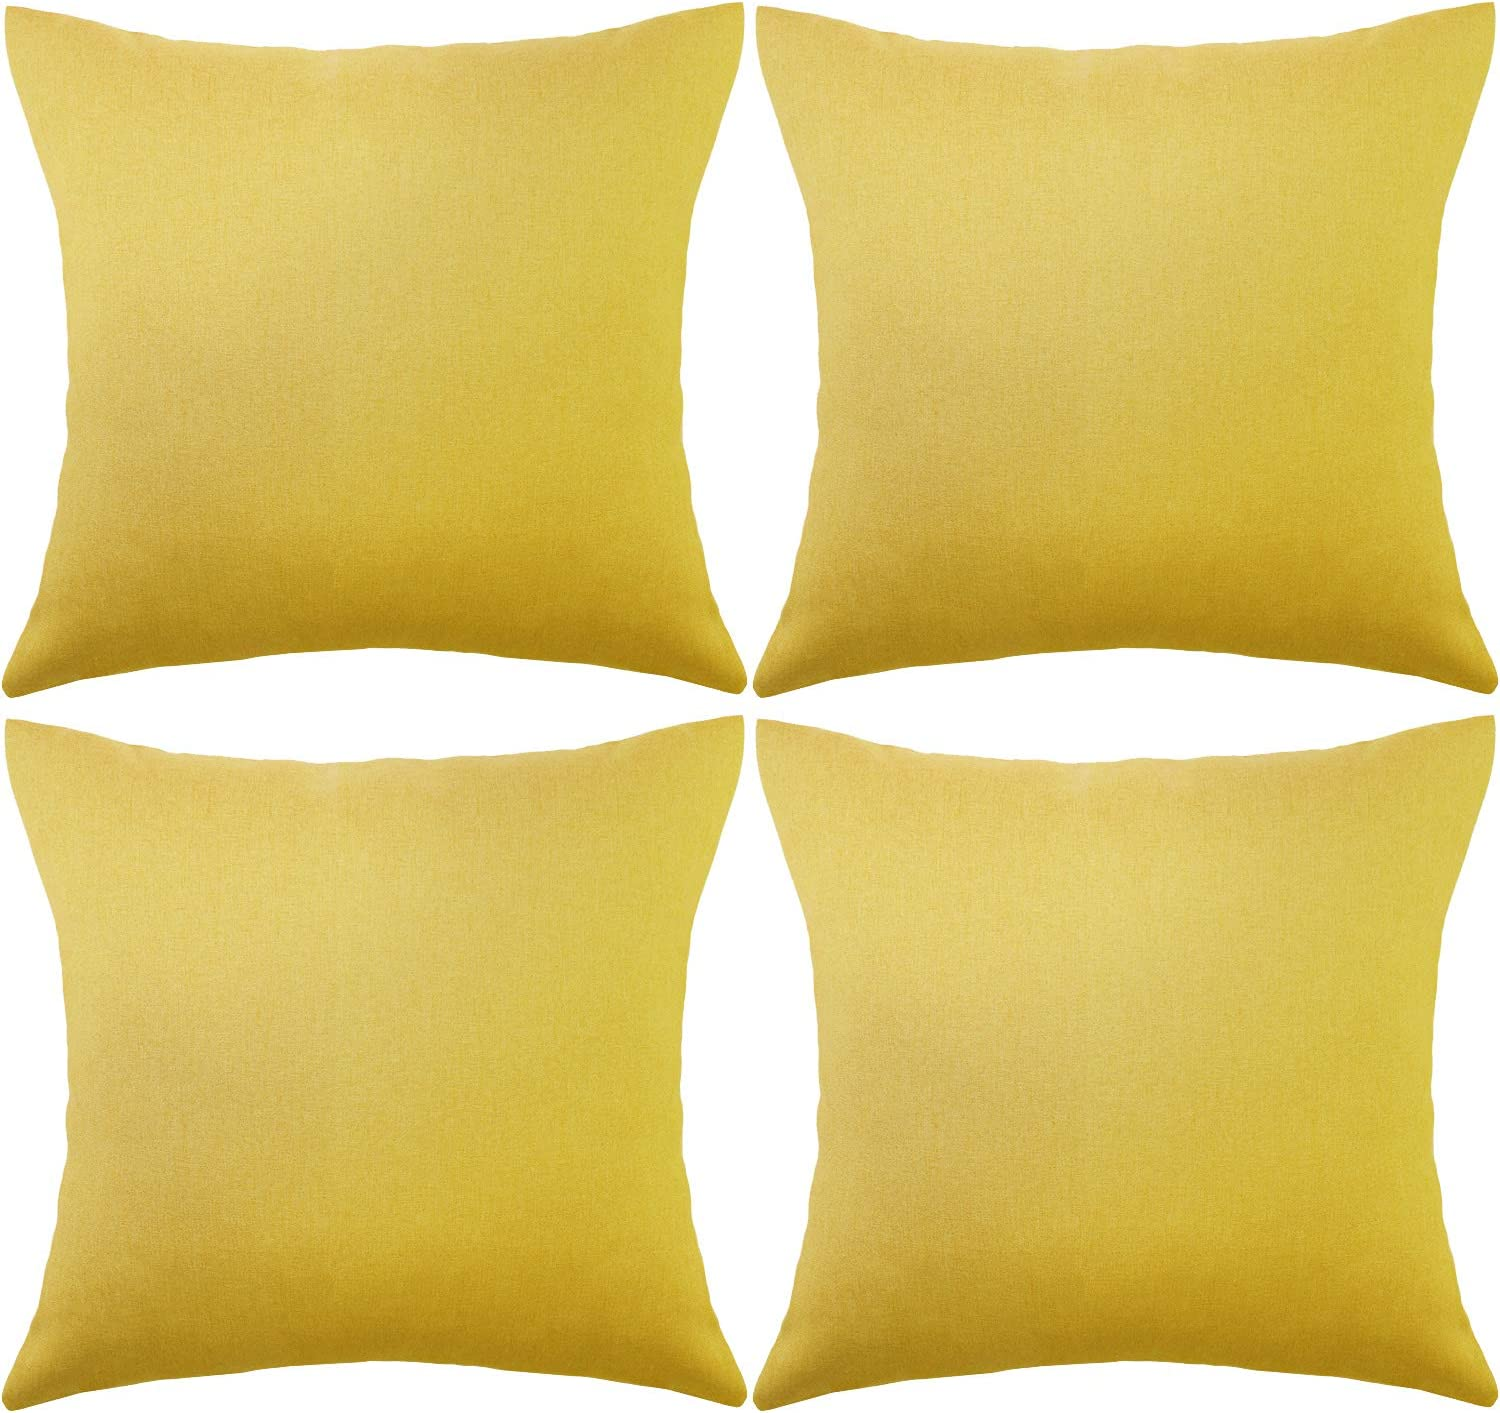 4 Packs Decorative Outdoor Patio Balcony Waterproof Throw Pillow Covers, Square Garden Cushion Case, PU Coating Pillow Shell for Couch, Bed, Patio, Sofa, Tent and Balcony,18 x 18 Inches(Golden Yellow)